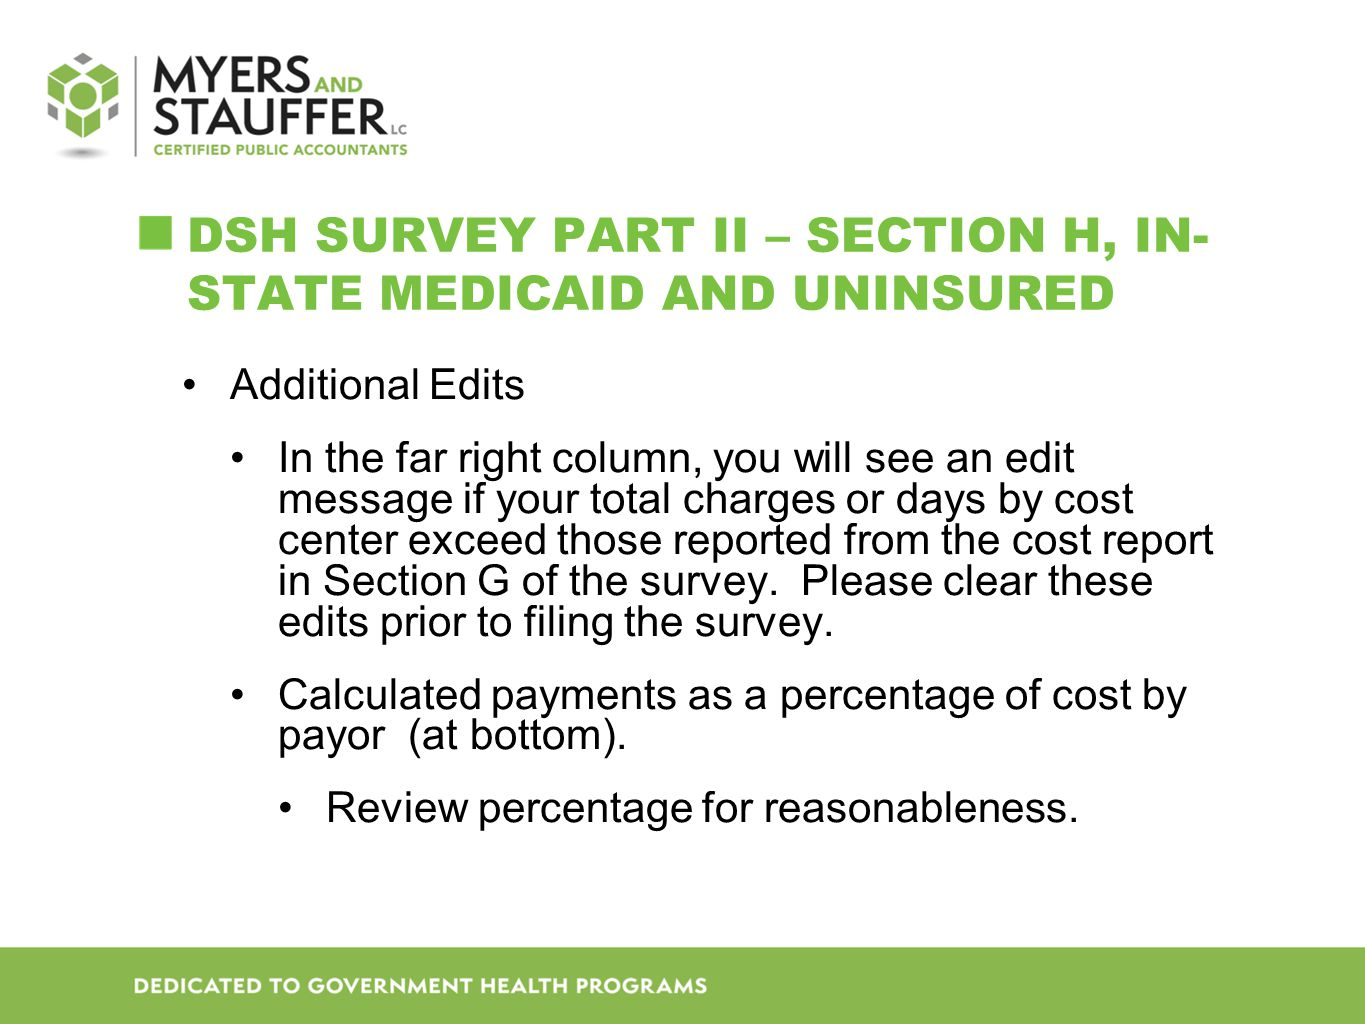 DSH SURVEY Part II – Section H, In-state Medicaid and Uninsured